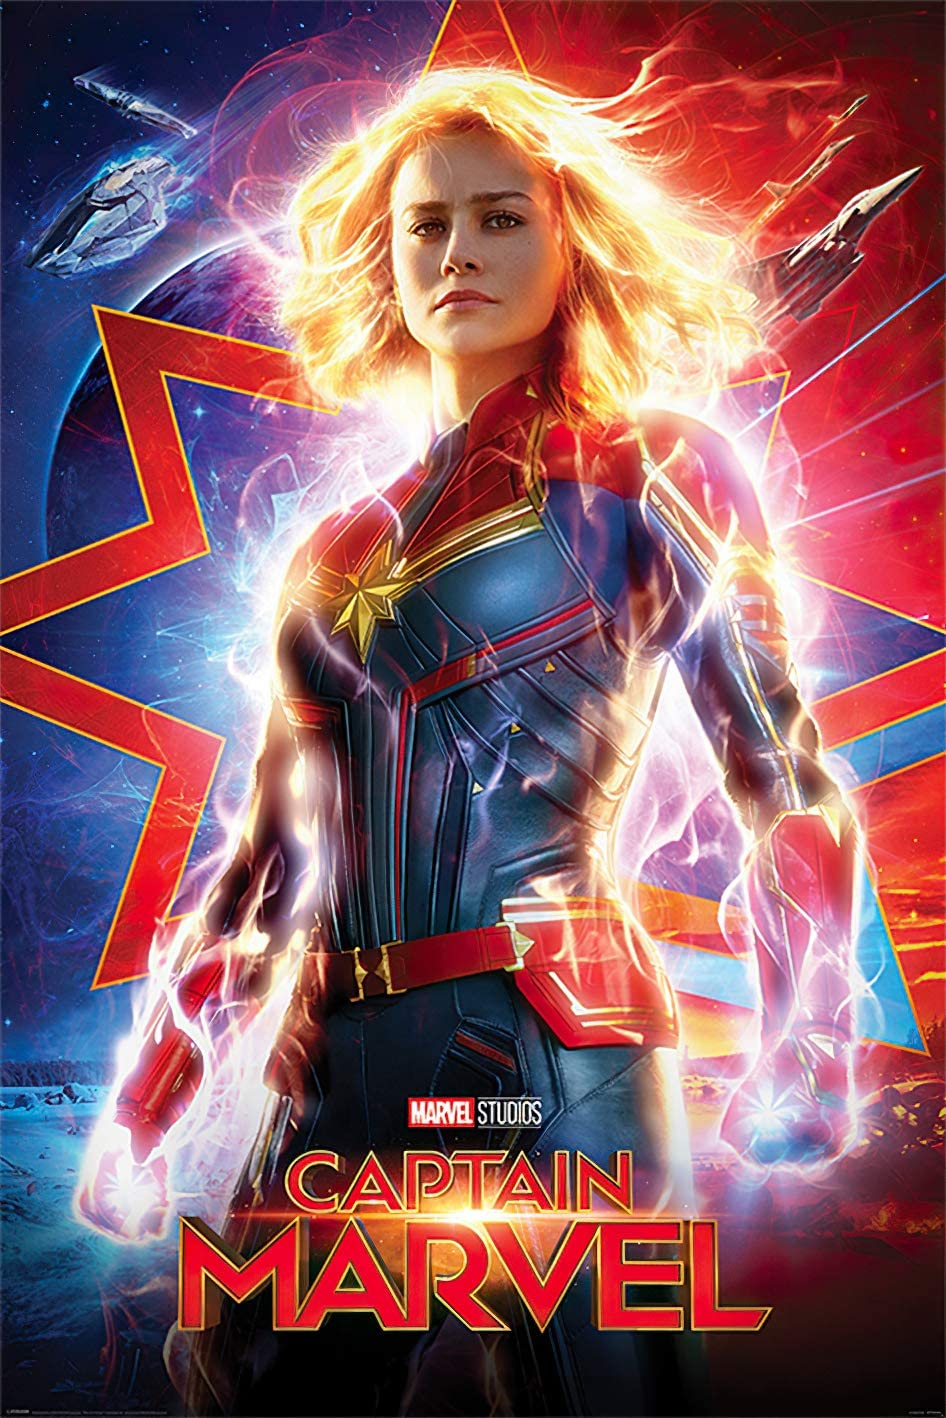 Captain Marvel - Marvel Comics Movie Poster (Regular Style) (Size: 24 x 36 inches)